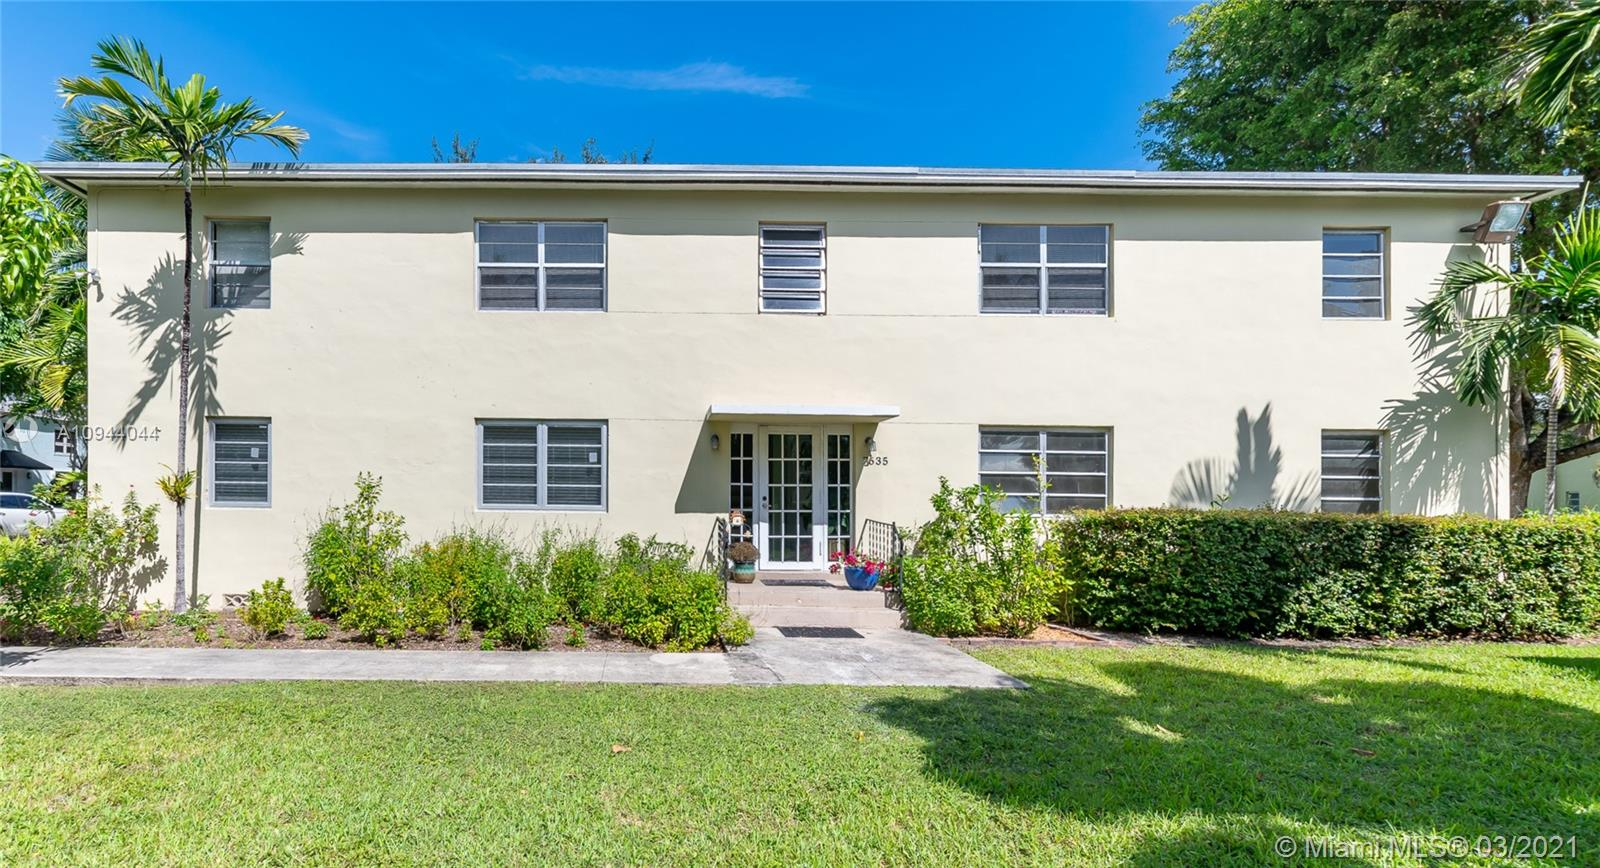 Located in the heart of South Miami, this immaculately-kept 2/1 condo offers a vast common area, tons of natural light, beautiful hardwood and tile floors throughout. Take a dip in the refreshing pool or go for a stroll and take in the lush greenery. Washer and dryer conveniently located in the unit. Property is rented until December 31, 2021. Enjoy the tranquility of this quiet neighborhood that is located within a short distance to Sunset Place Mall, University of Miami, dining, shopping, excellent schools, and places of worship.